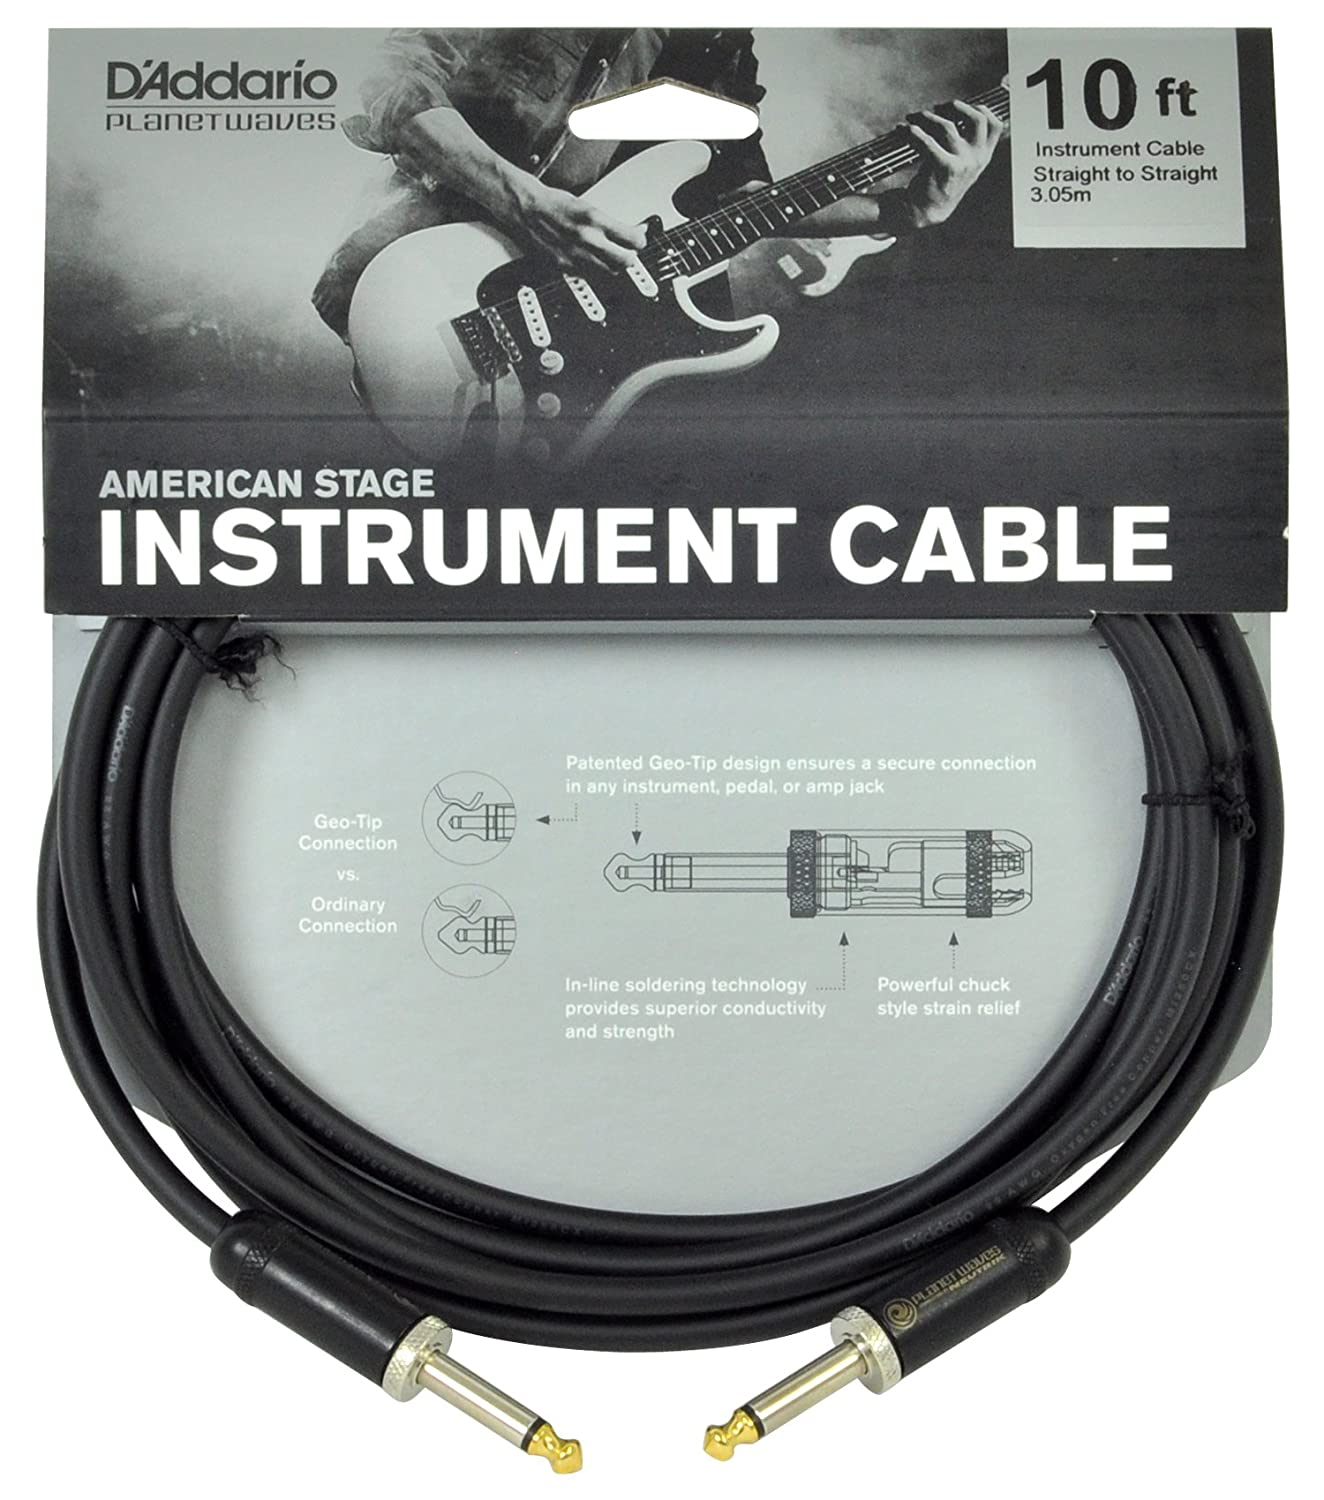 Amazon.com: Planet Waves American Stage Guitar and Instrument Cable ...